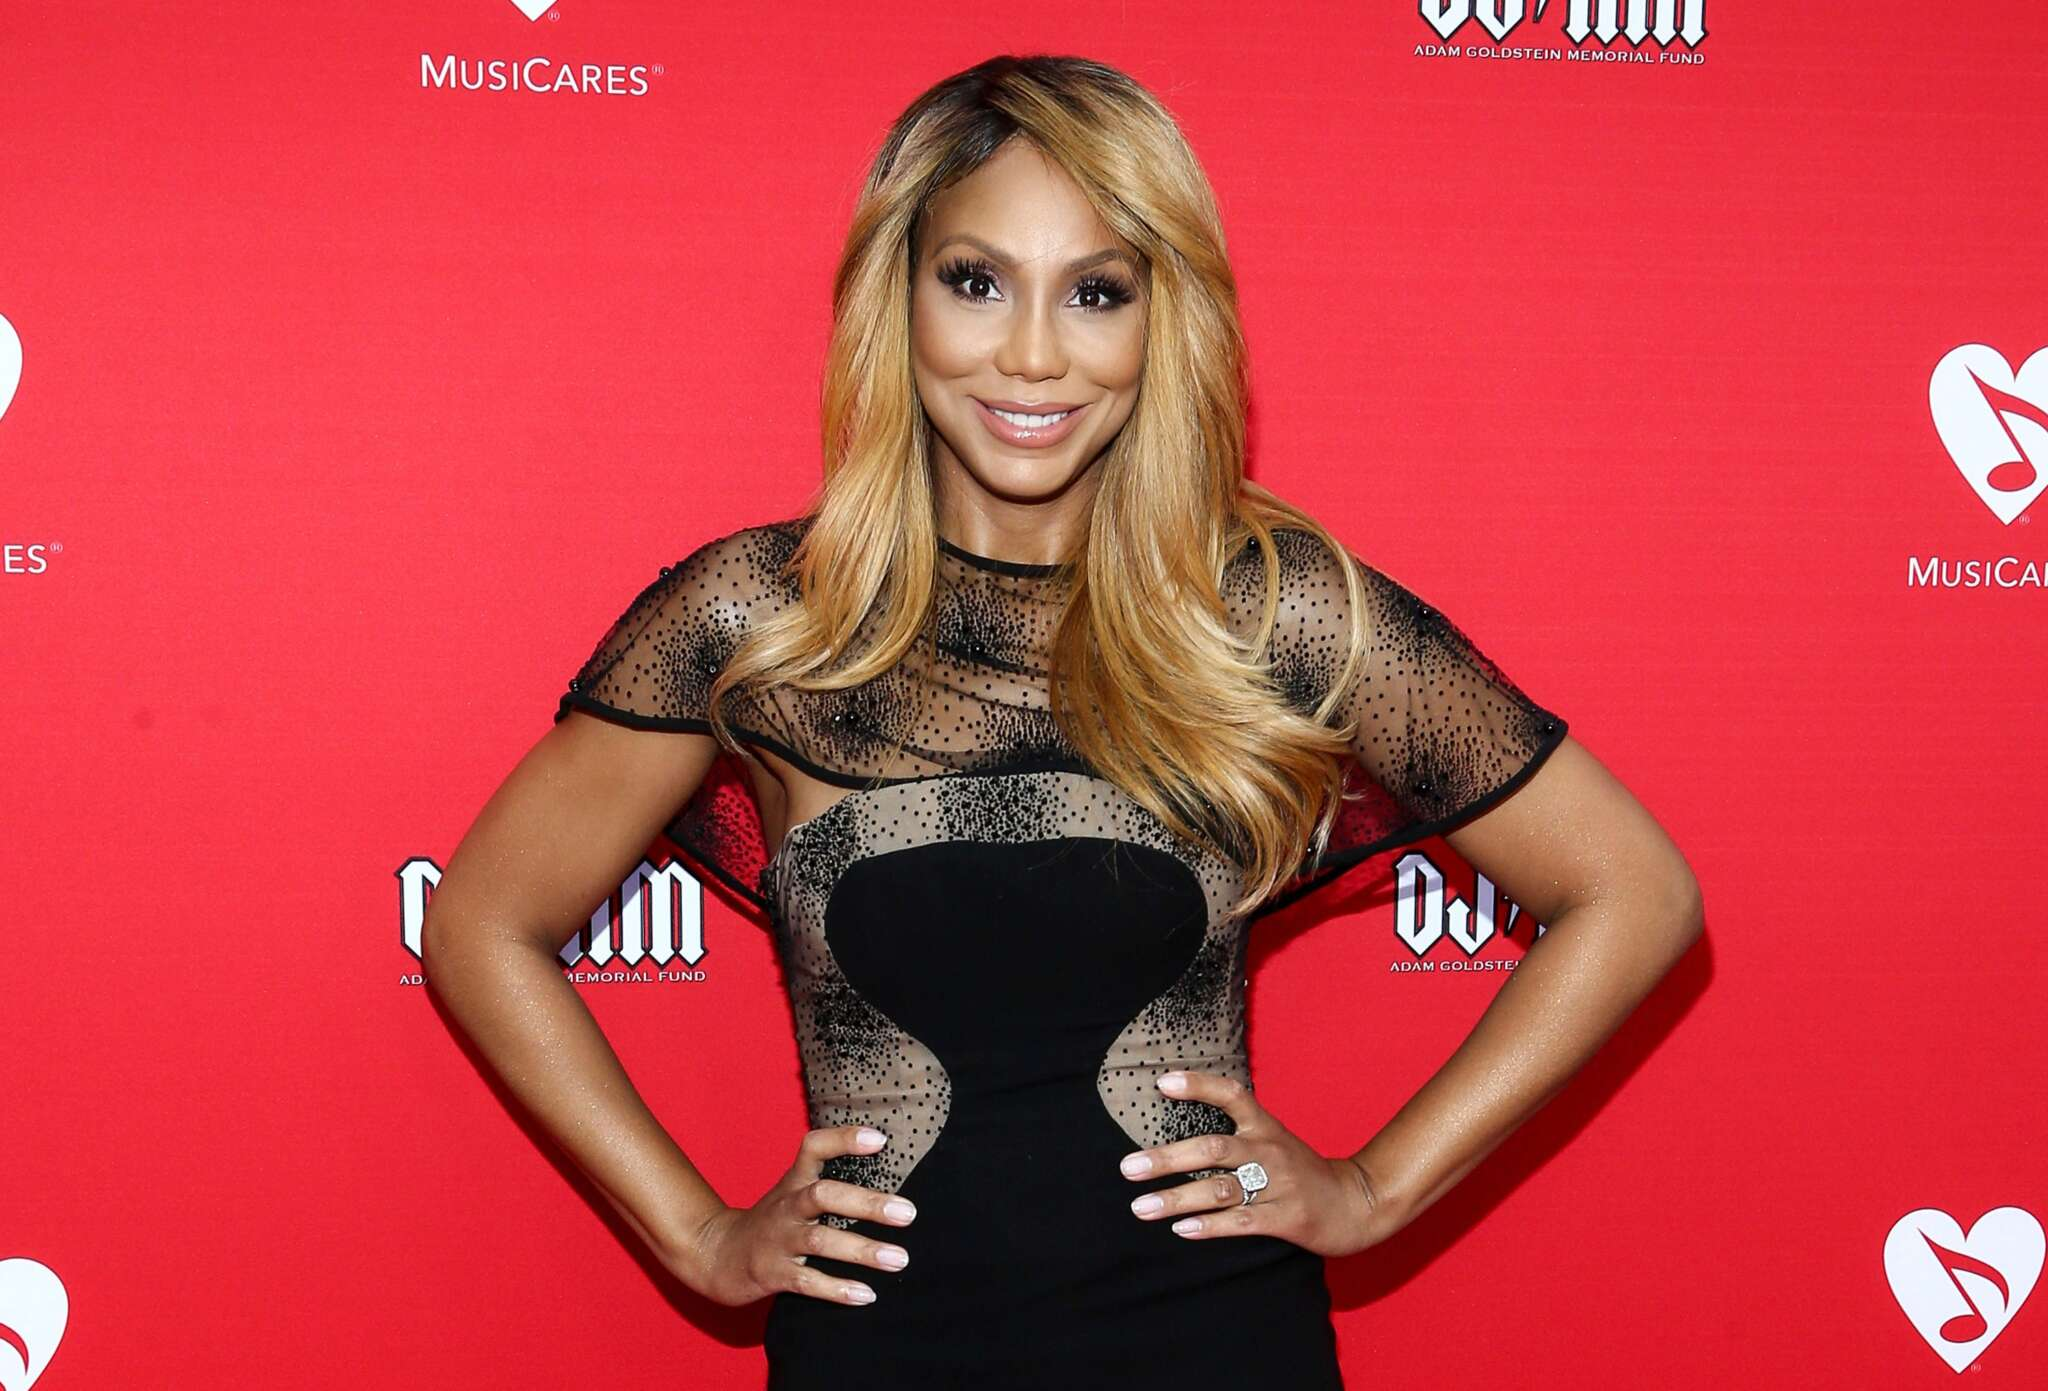 Tamar Braxton Has A New Podcast Episode Out Featuring Saweetie